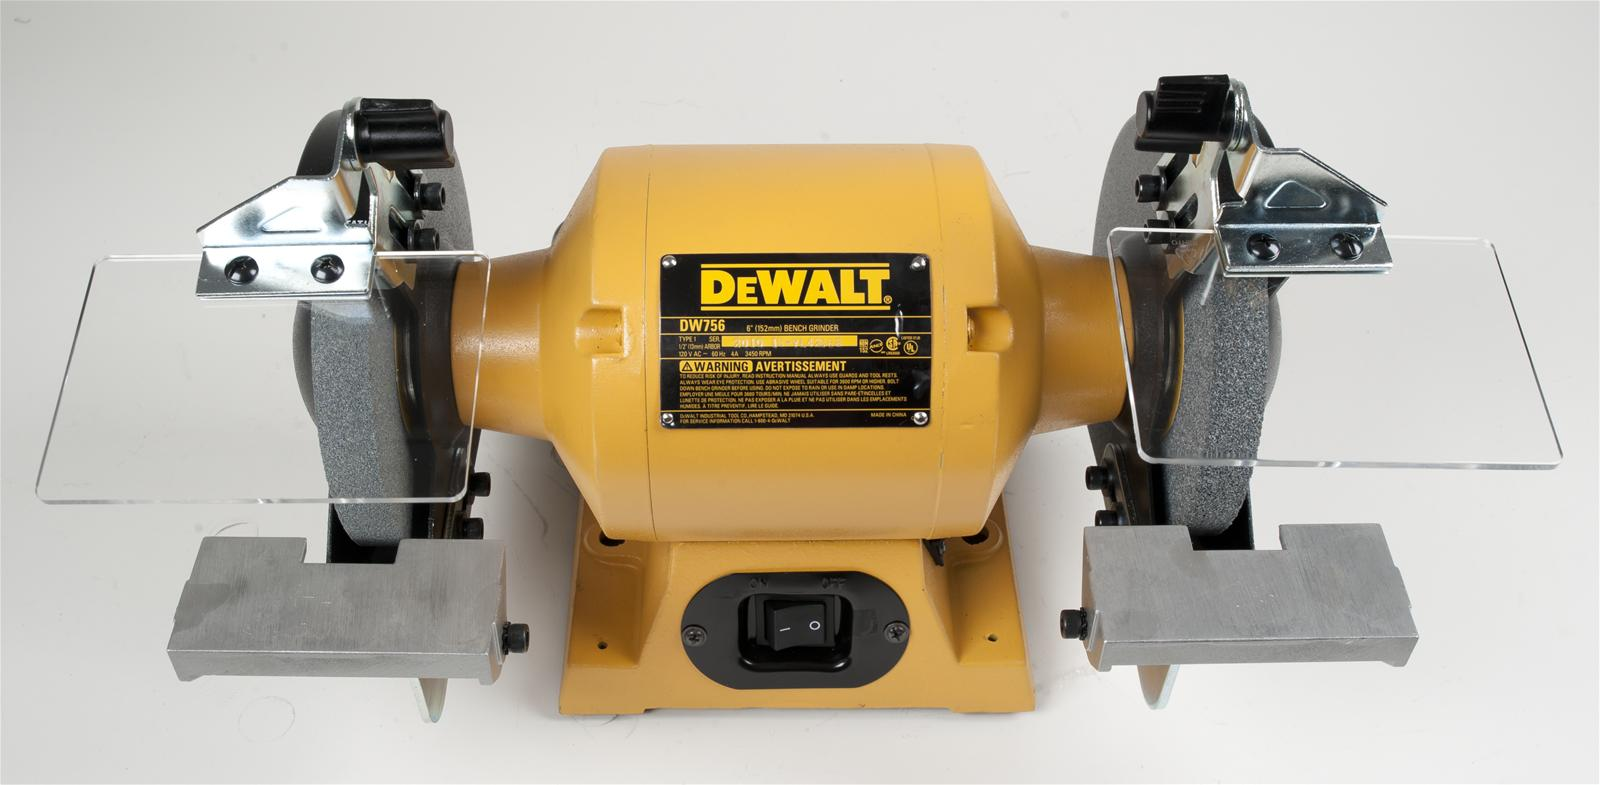 Dewalt Heavy Duty 6 In Bench Grinders Dw756 Free Shipping On Orders Over 99 At Summit Racing